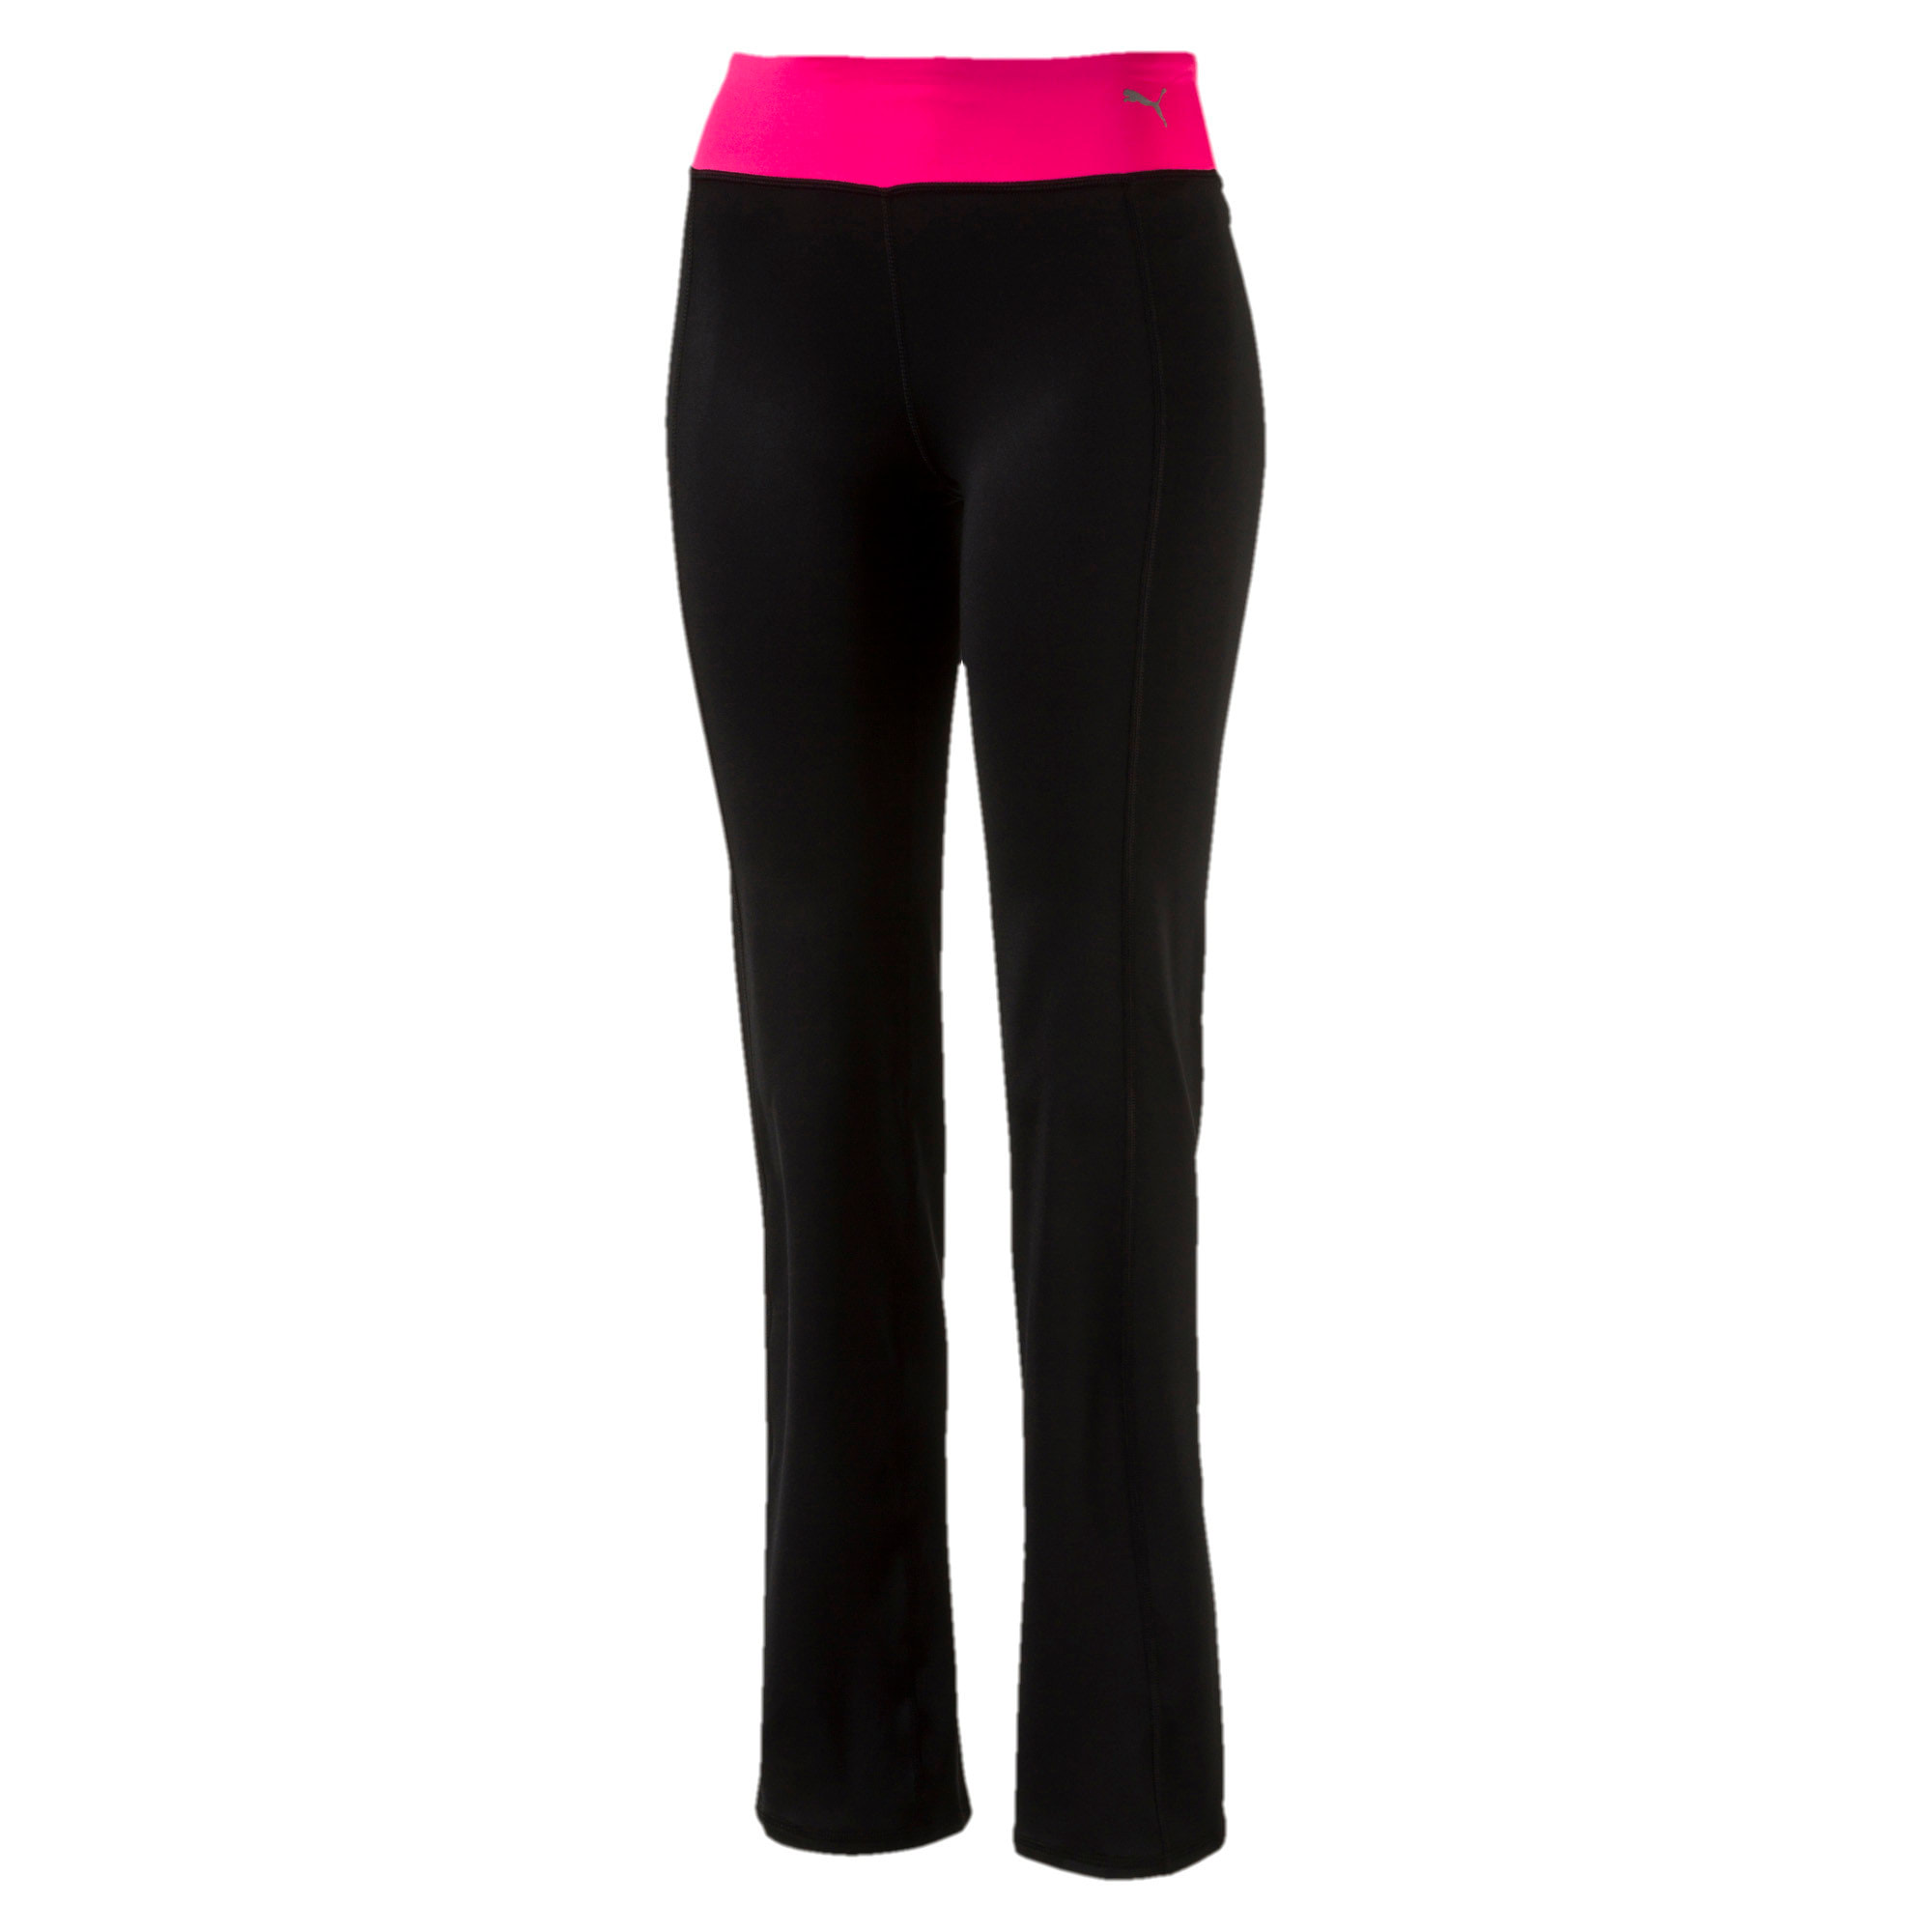 Thumbnail 1 of Training Women's Essential Straight Leg Pants, Puma Black-KNOCKOUT PINK, medium-IND